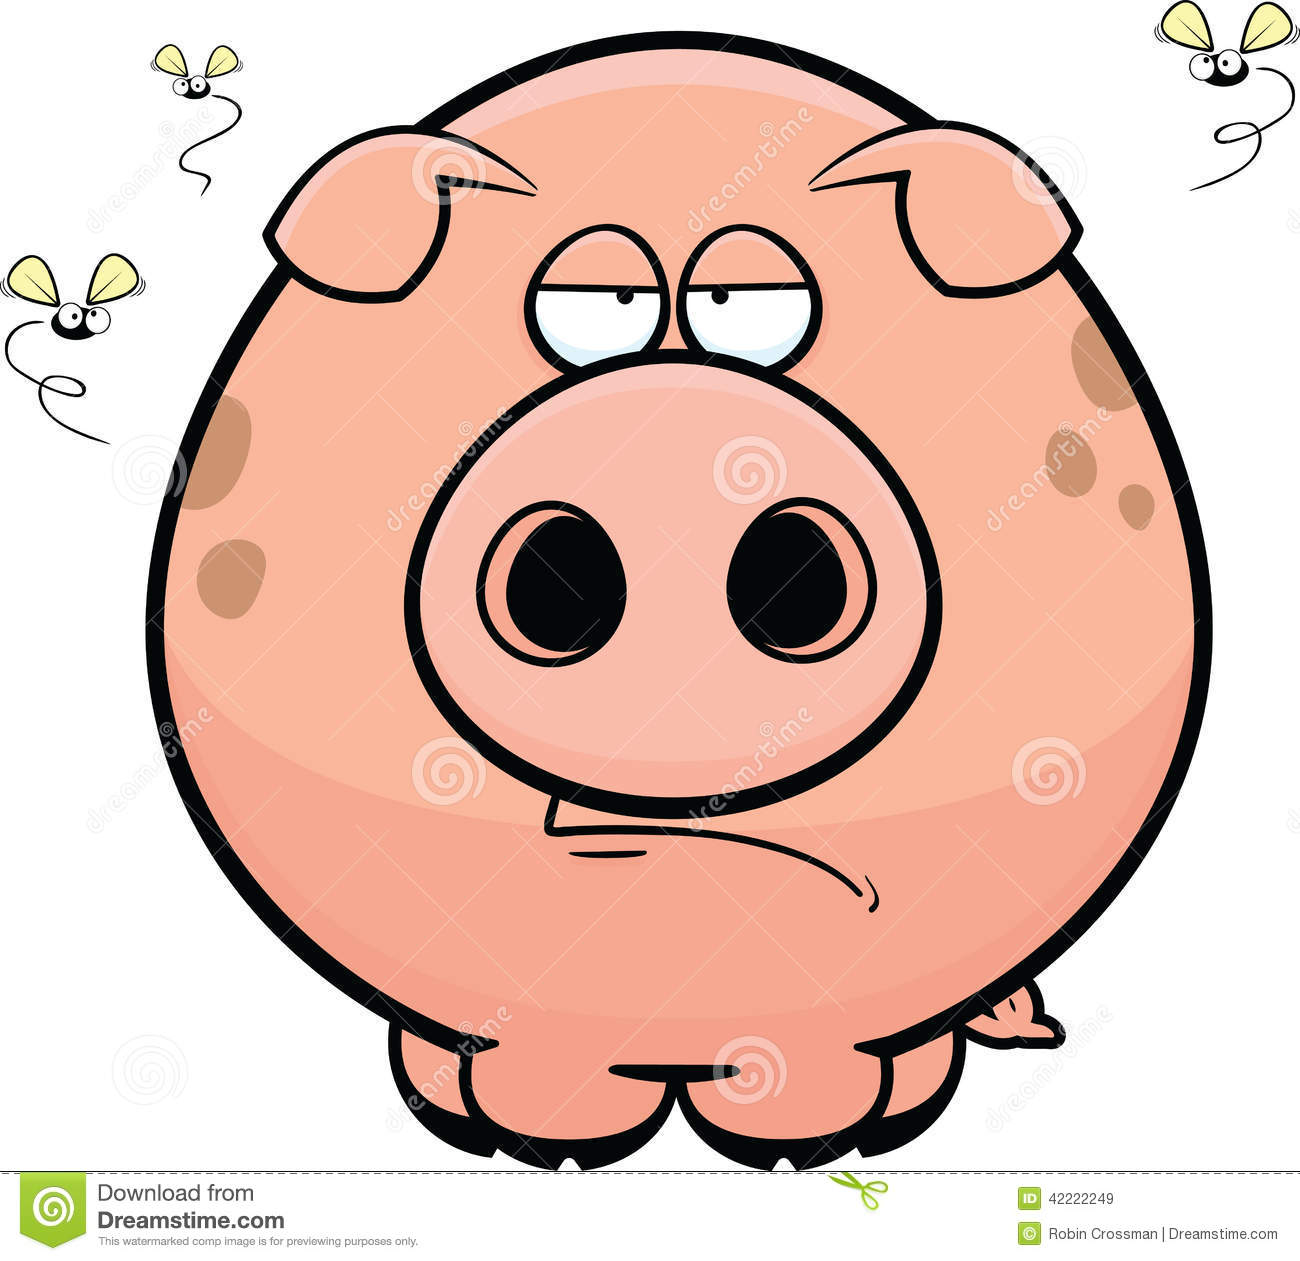 Cartoon Pig Stock Photos, Images, & Pictures – (7,646 Images)